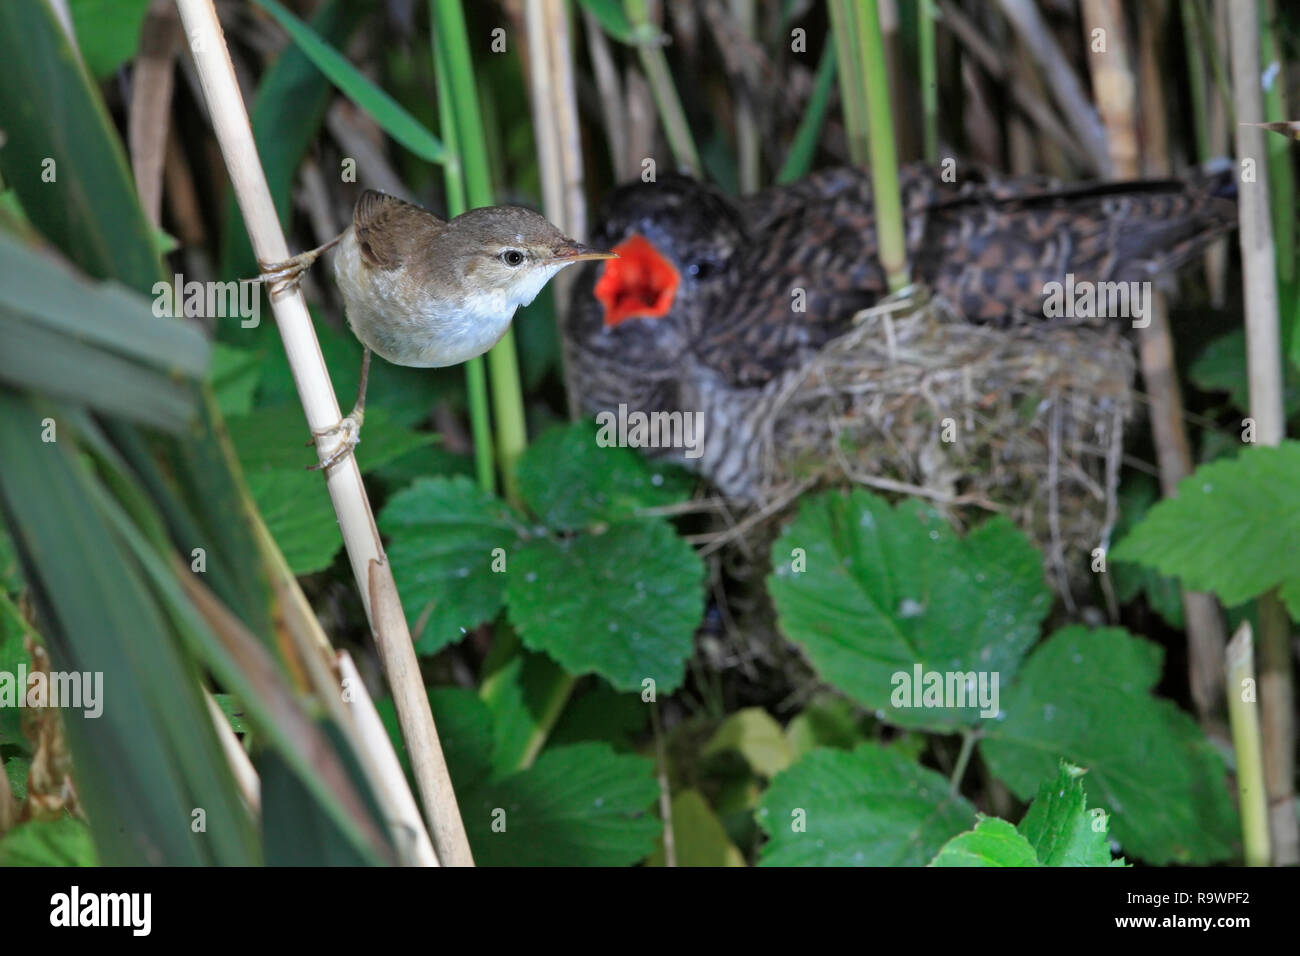 REED WARBLER (Acrocephalus scirpaceus) with cuckoo parasite in the background, UK. - Stock Image